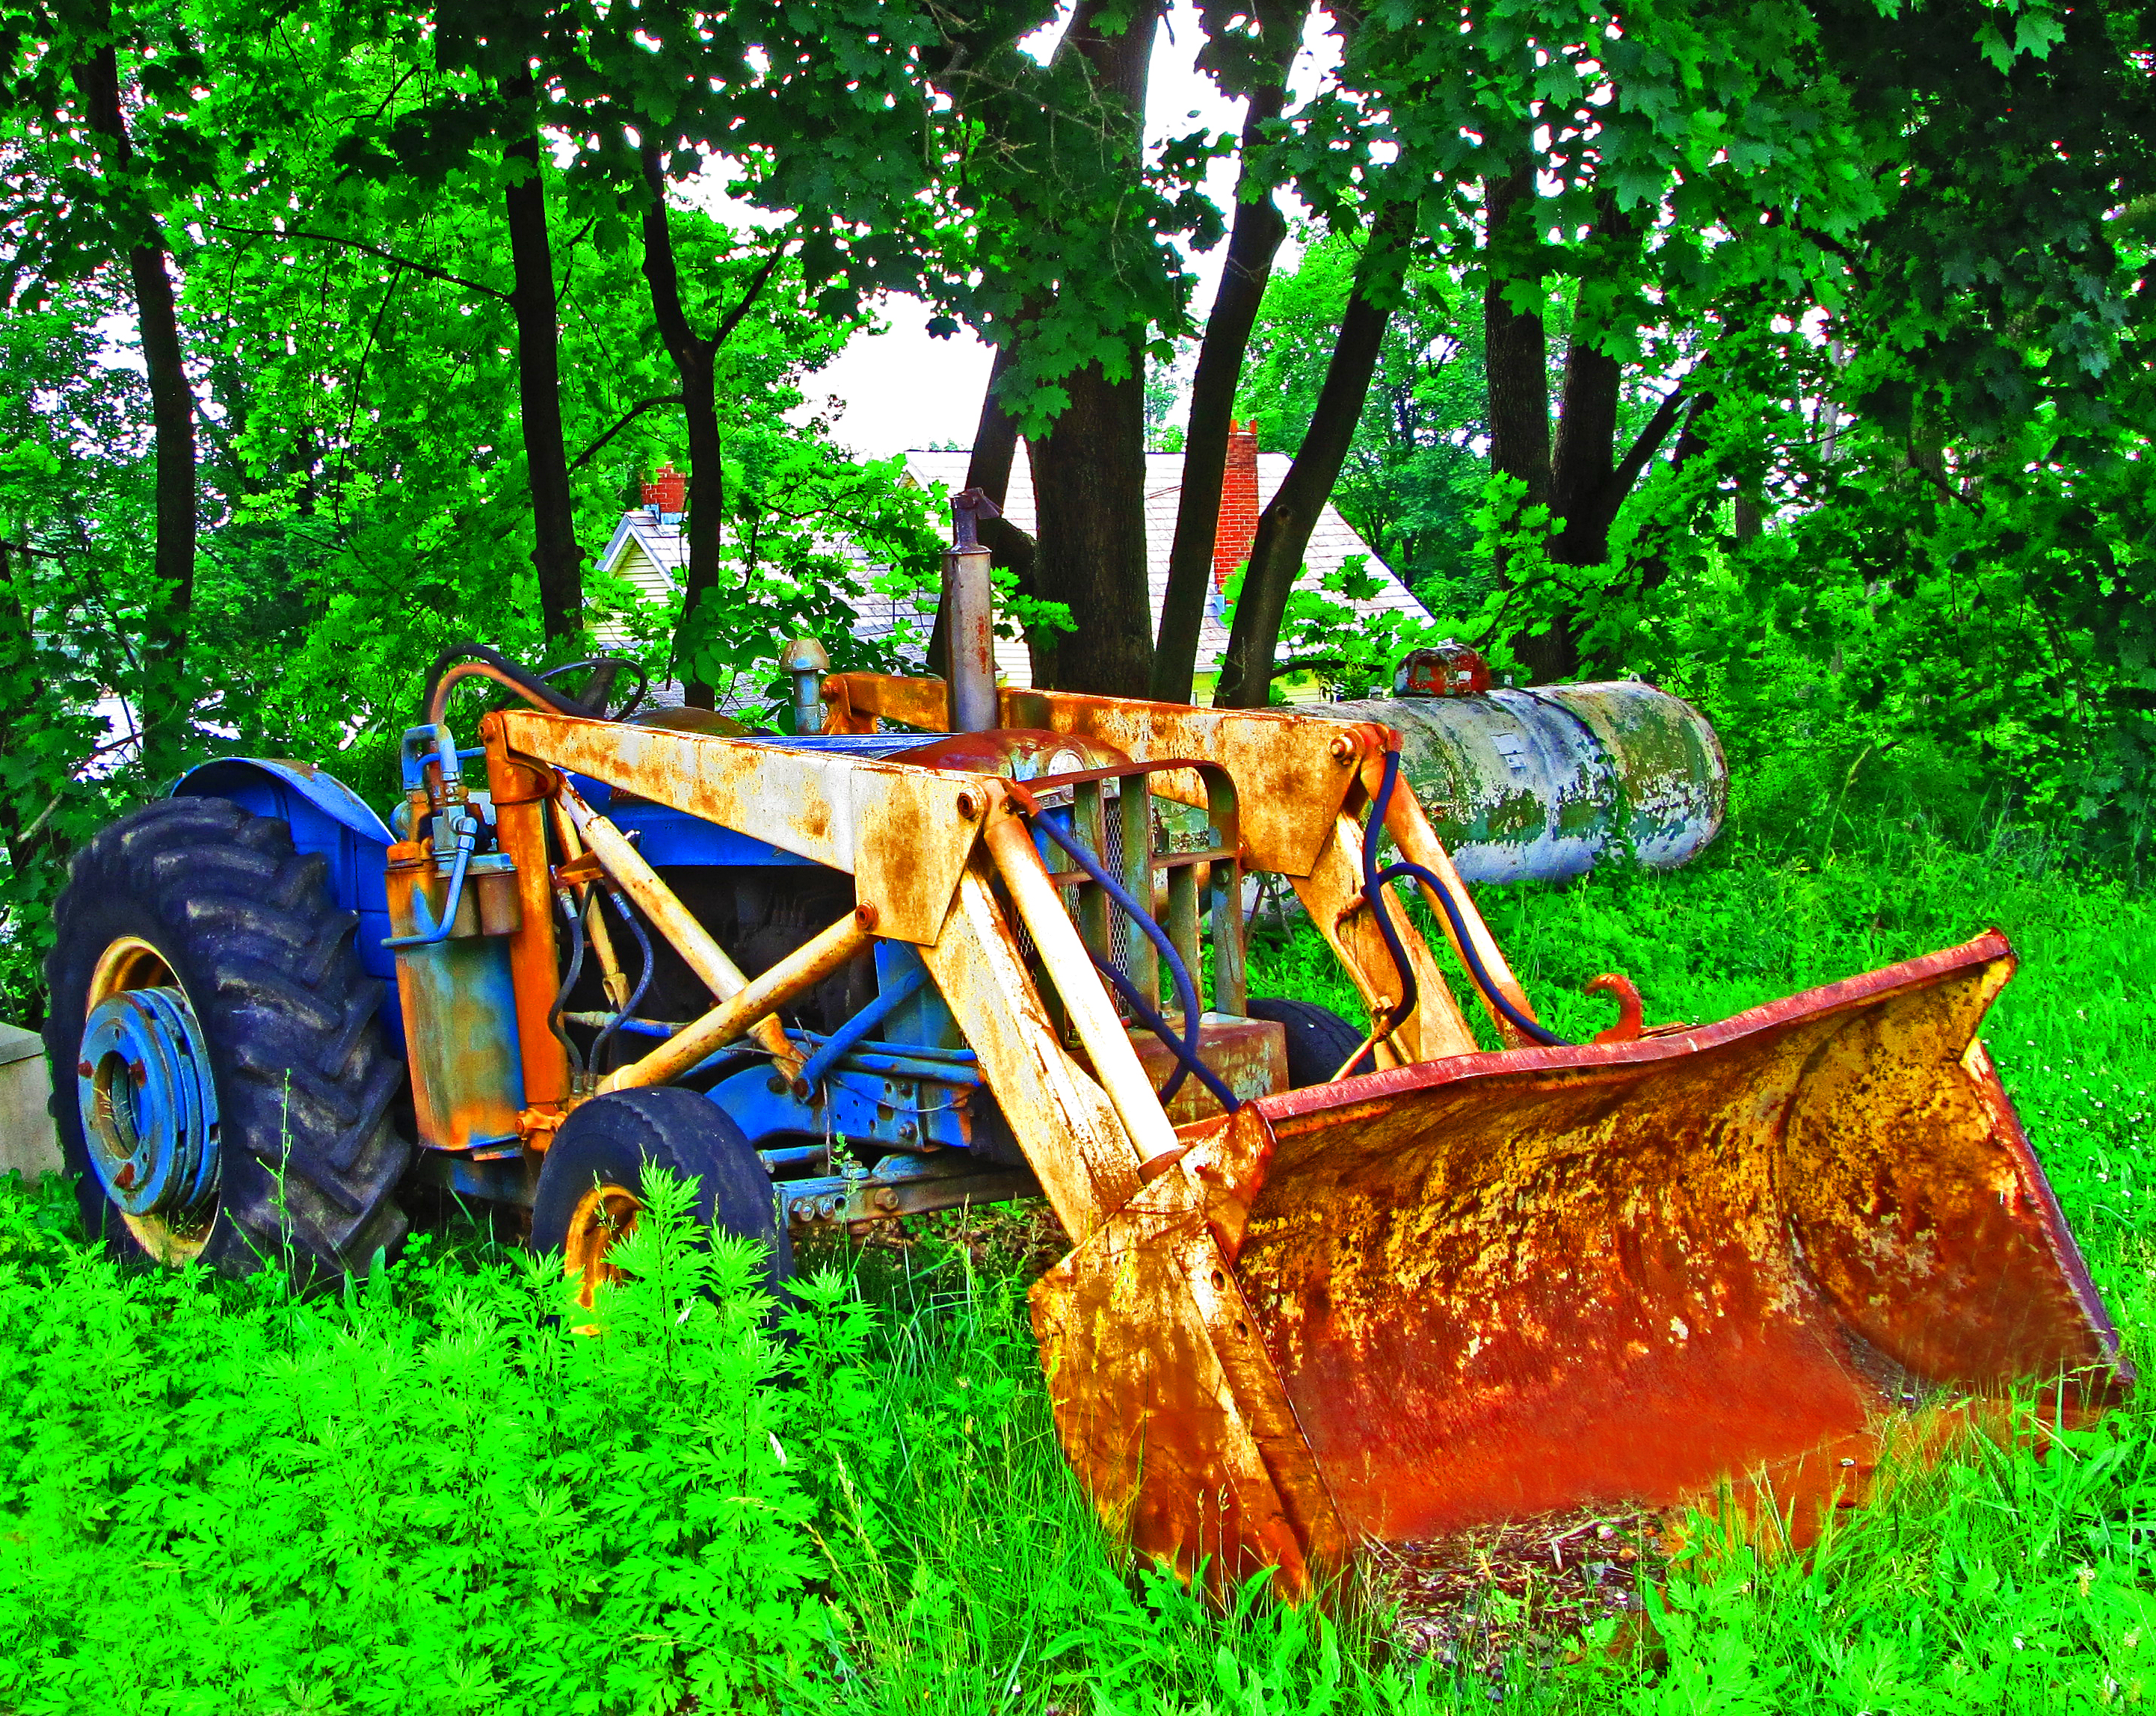 Older Tractor With Front Loader